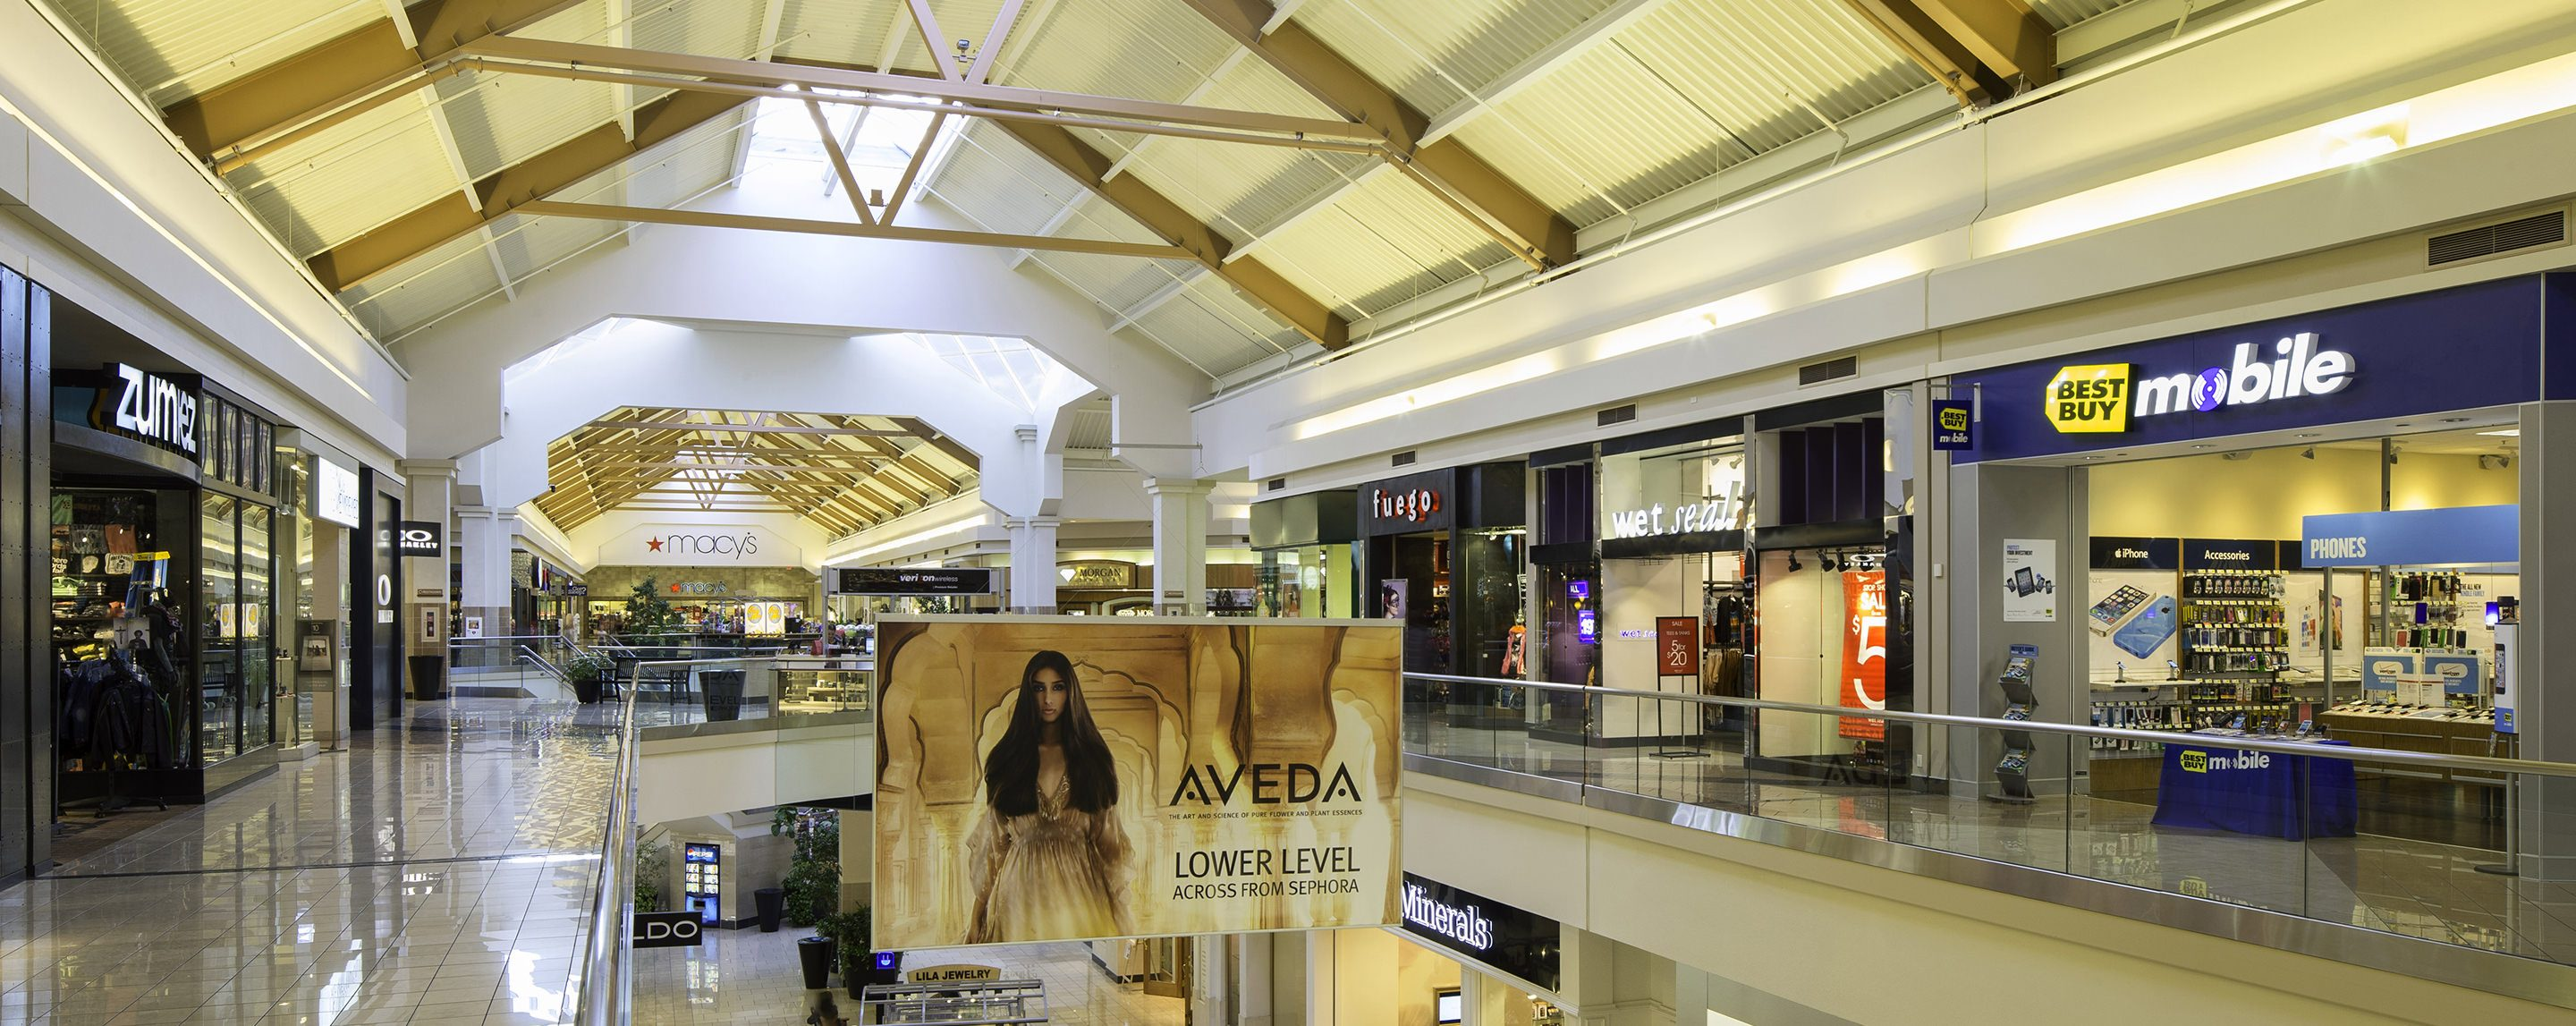 A variety of storefronts line the sides of a two story mall, including Aveda and Fuego.